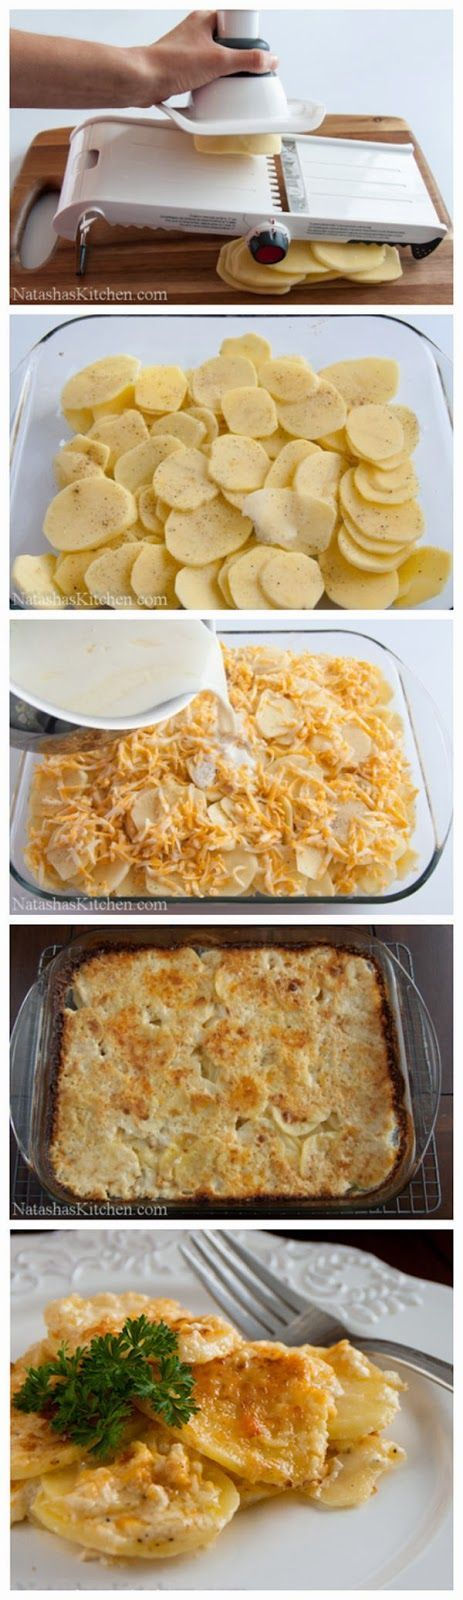 Ingredients:   3 lbs Yukon Gold Potatoes, peeled  ½ yellow onion  4-6 garlic cloves  1 tsp salt  1 tsp black pepper  3 cups shredded ched...